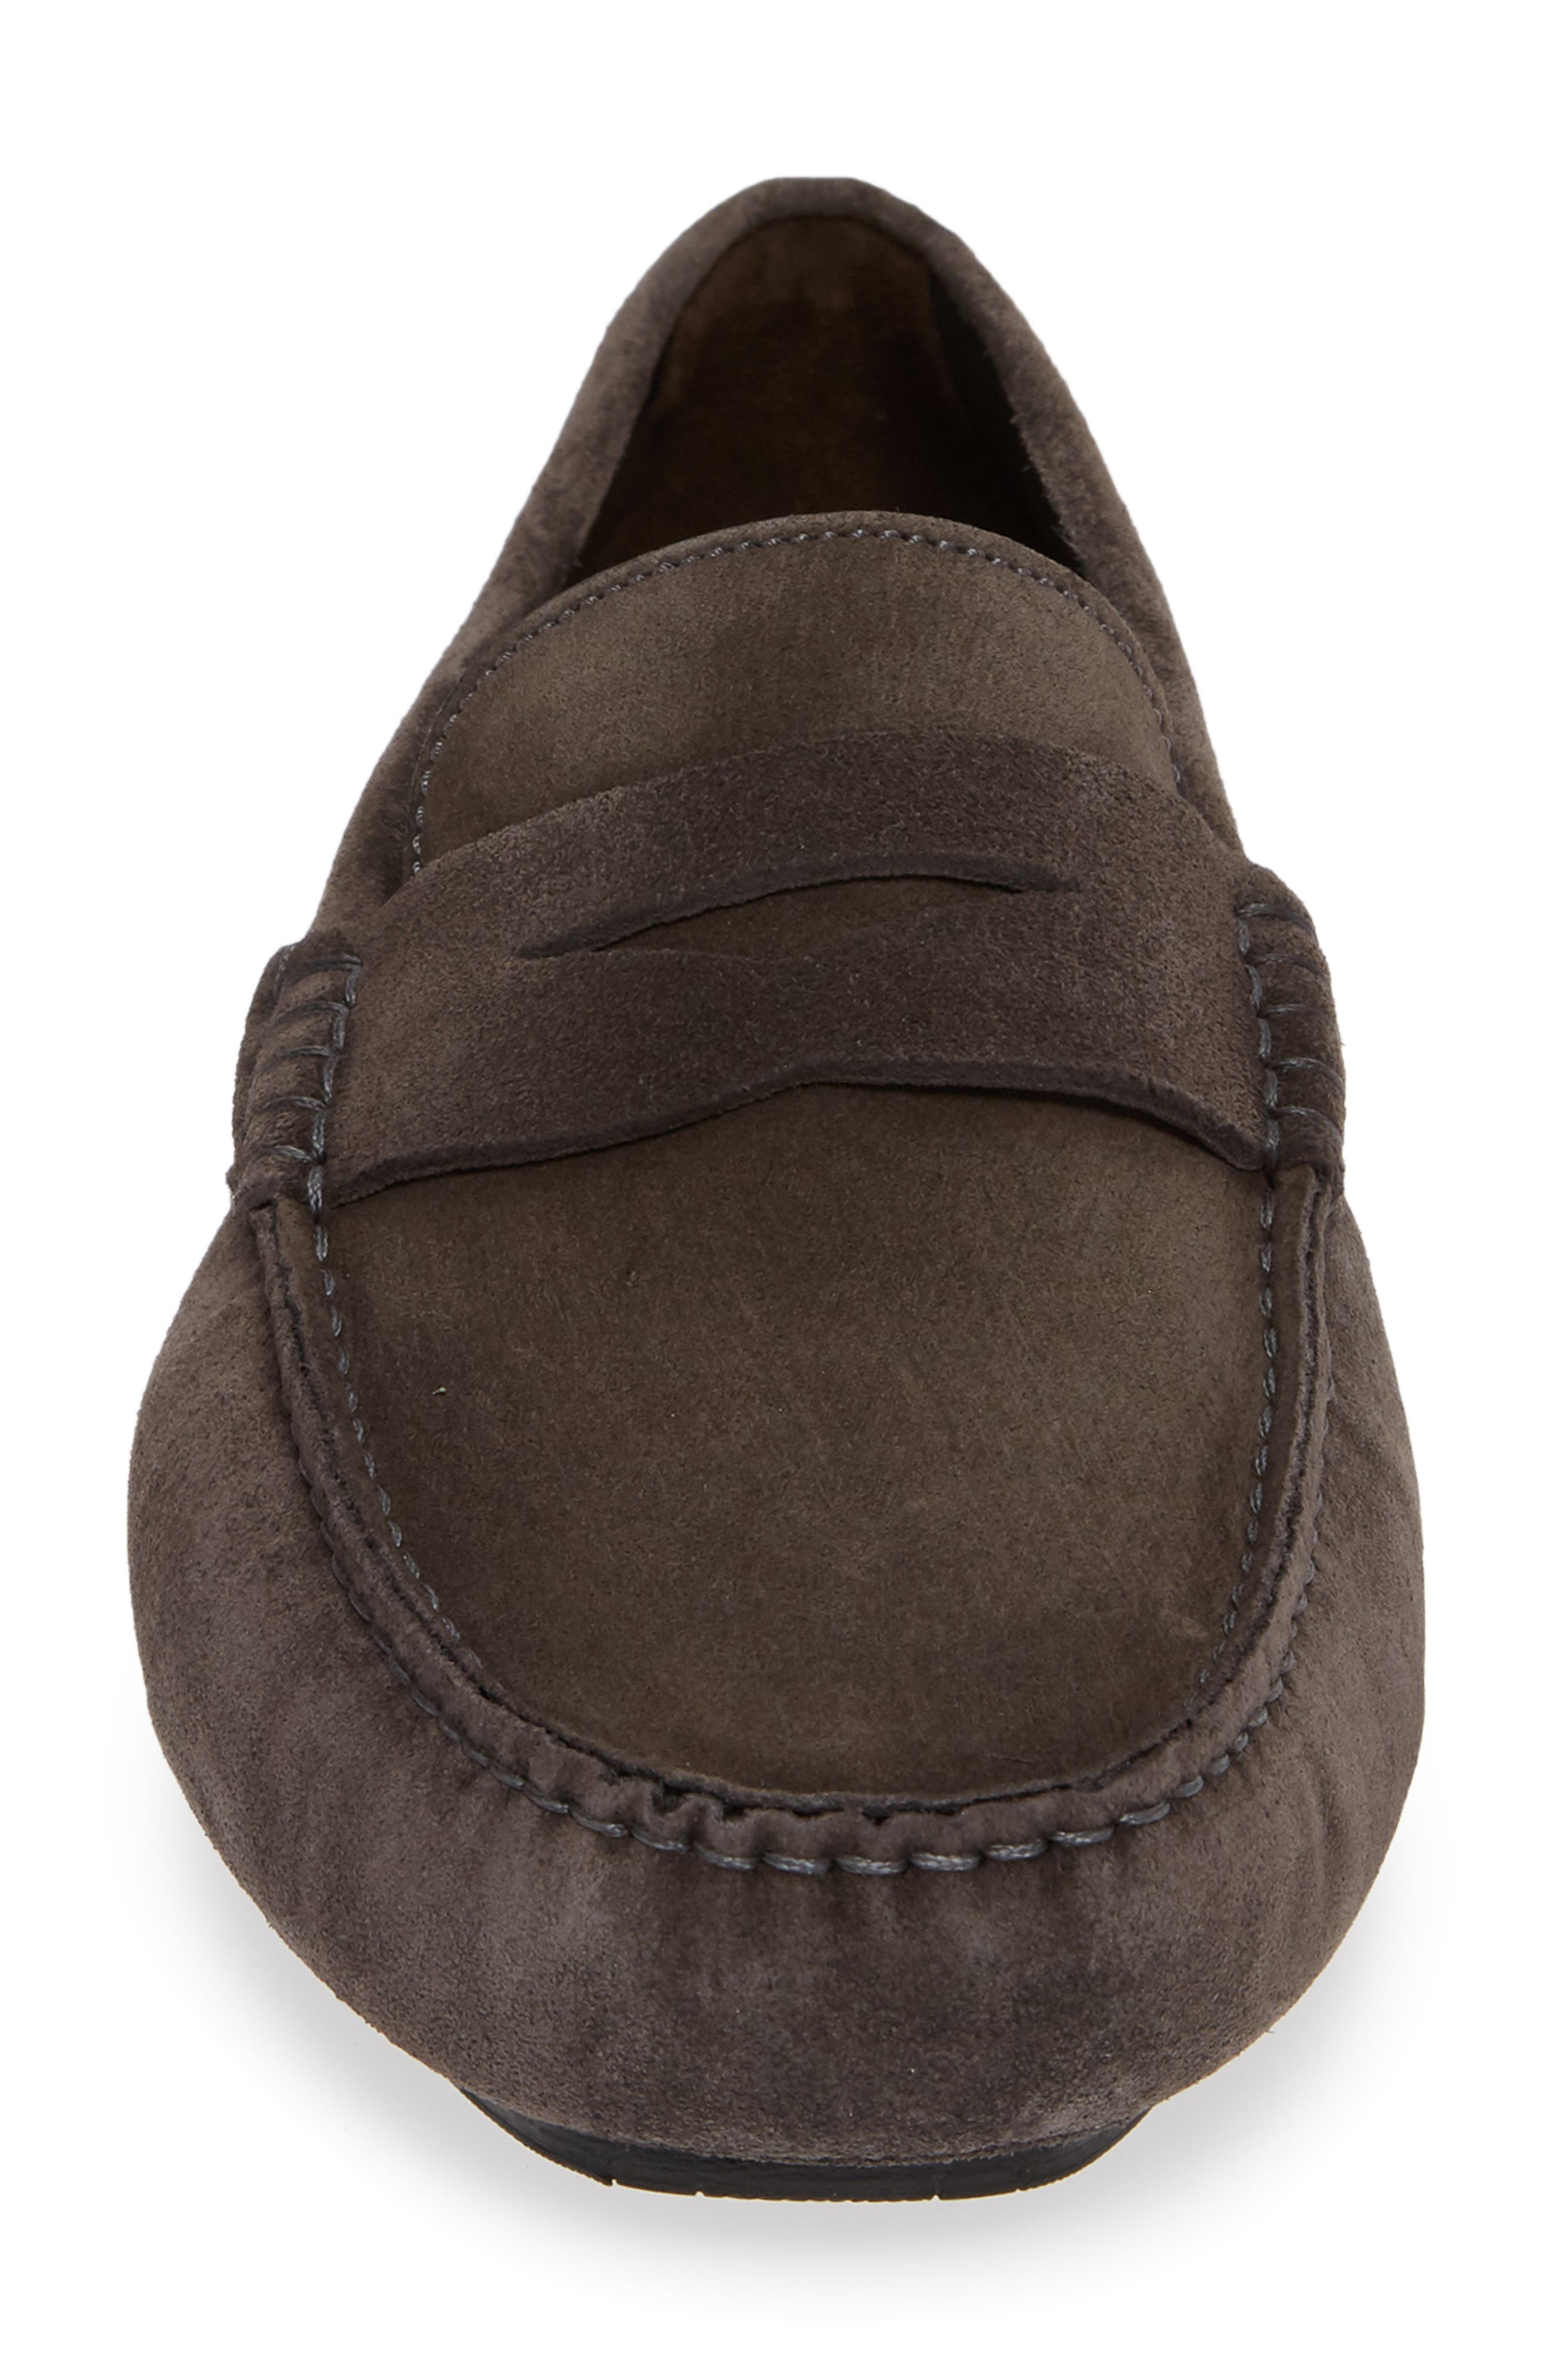 Jackson Penny Driving Loafer,                             Alternate thumbnail 4, color,                             GREY LEATHER